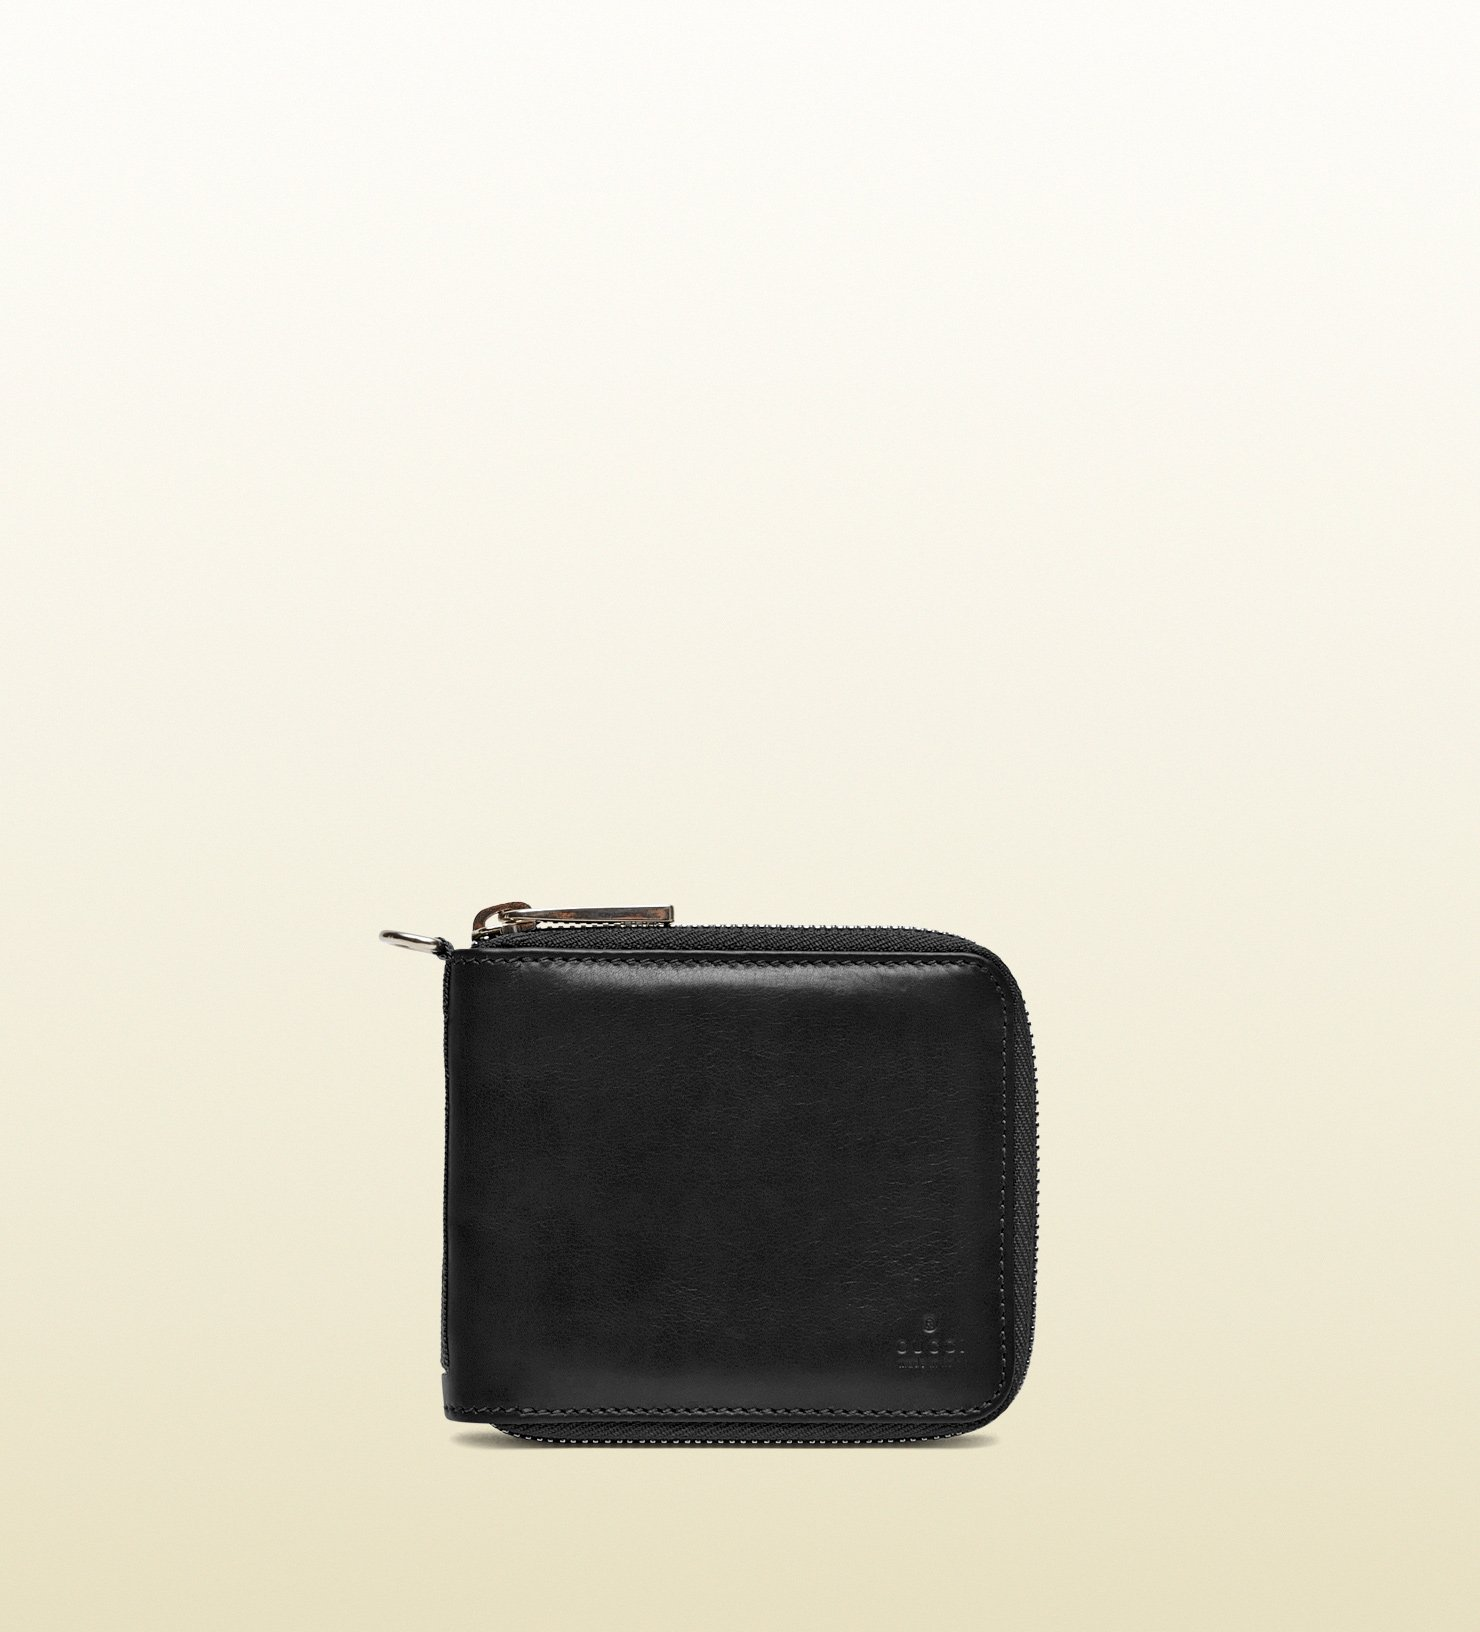 gucci zip around wallet. gallery gucci zip around wallet